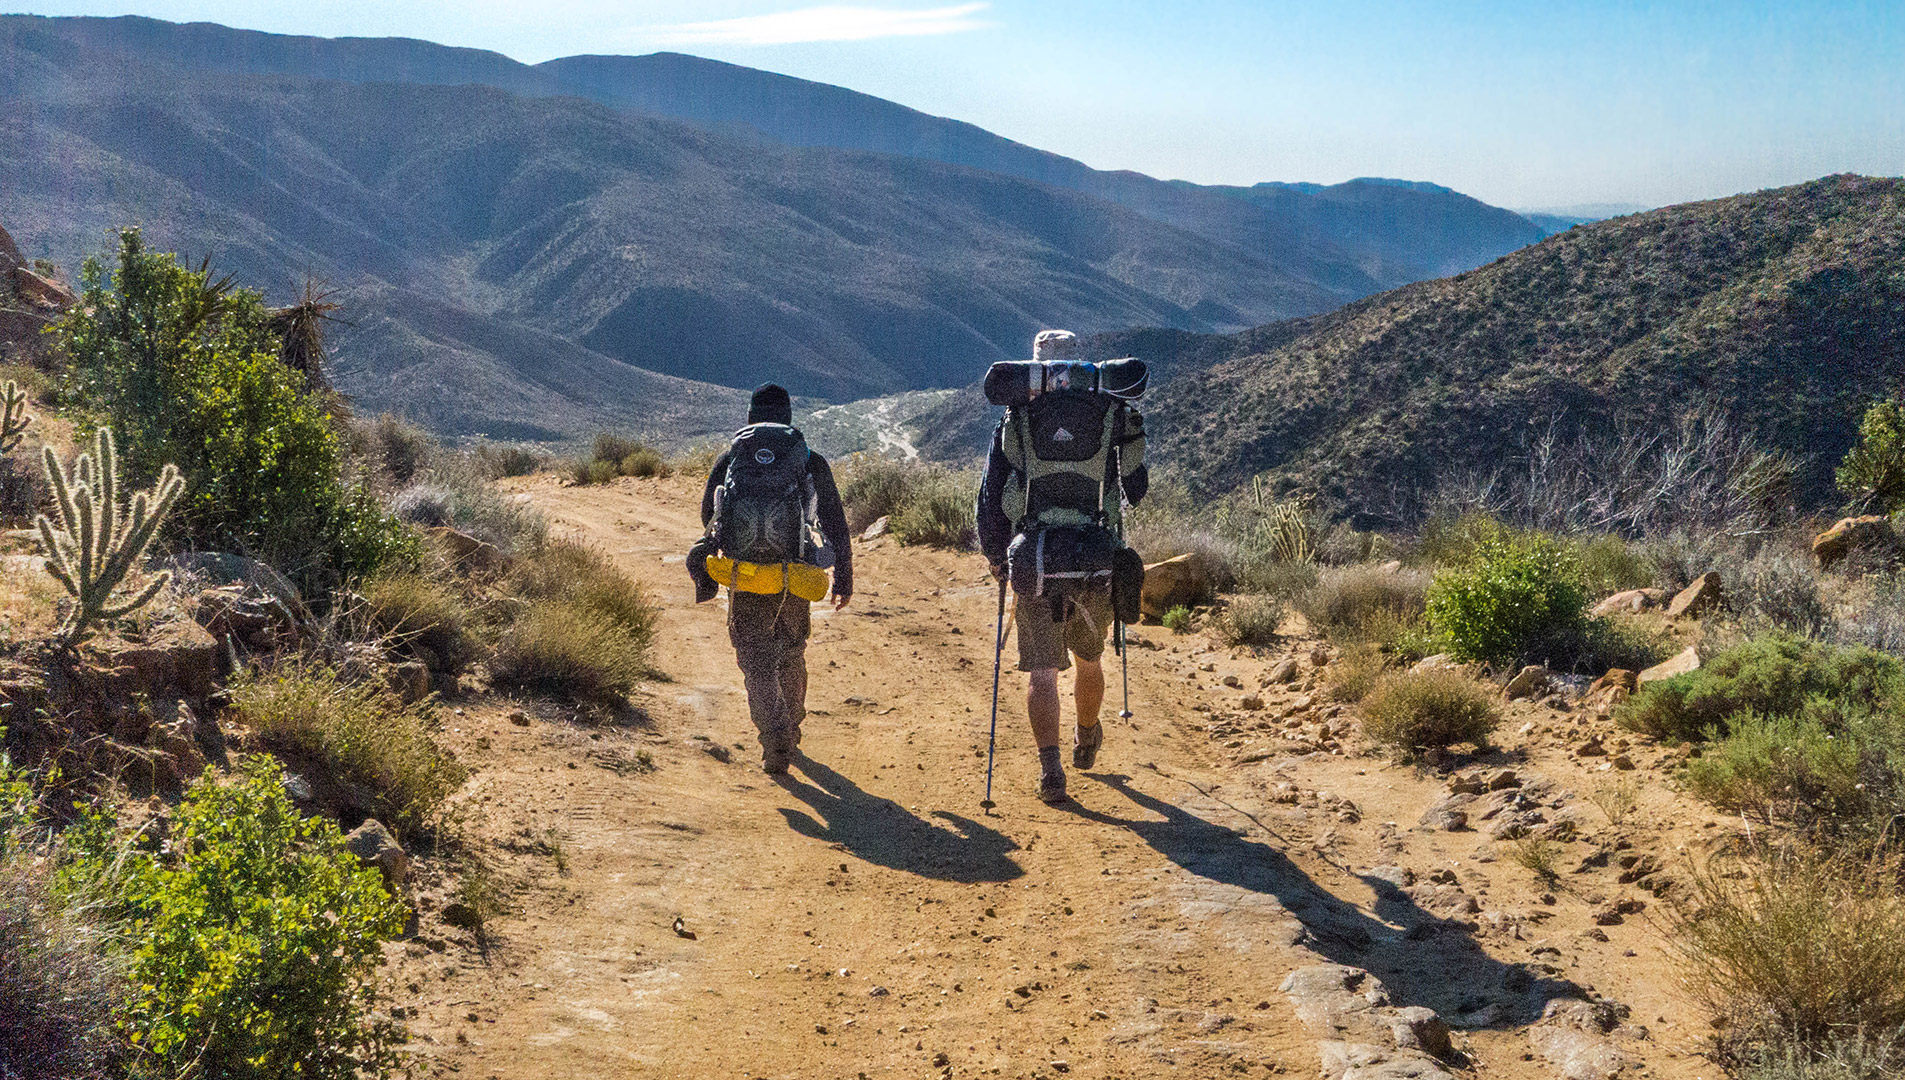 Two backpackers hike down the Juan Bautista de Anza National Historic Trail.